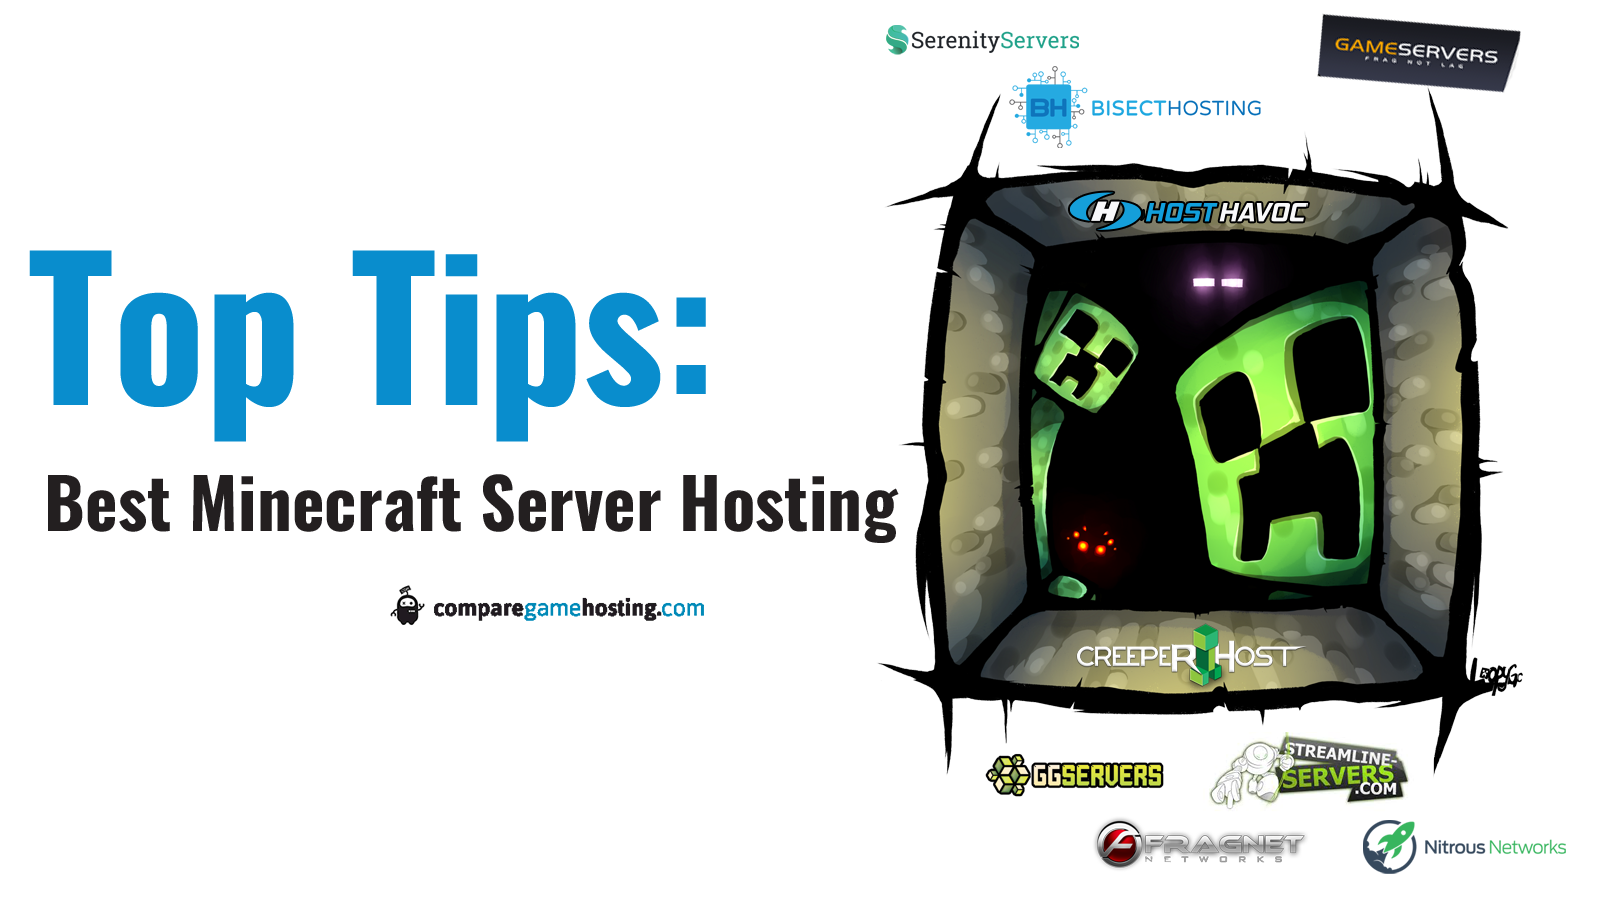 Best Minecraft Server Hosting Thumb